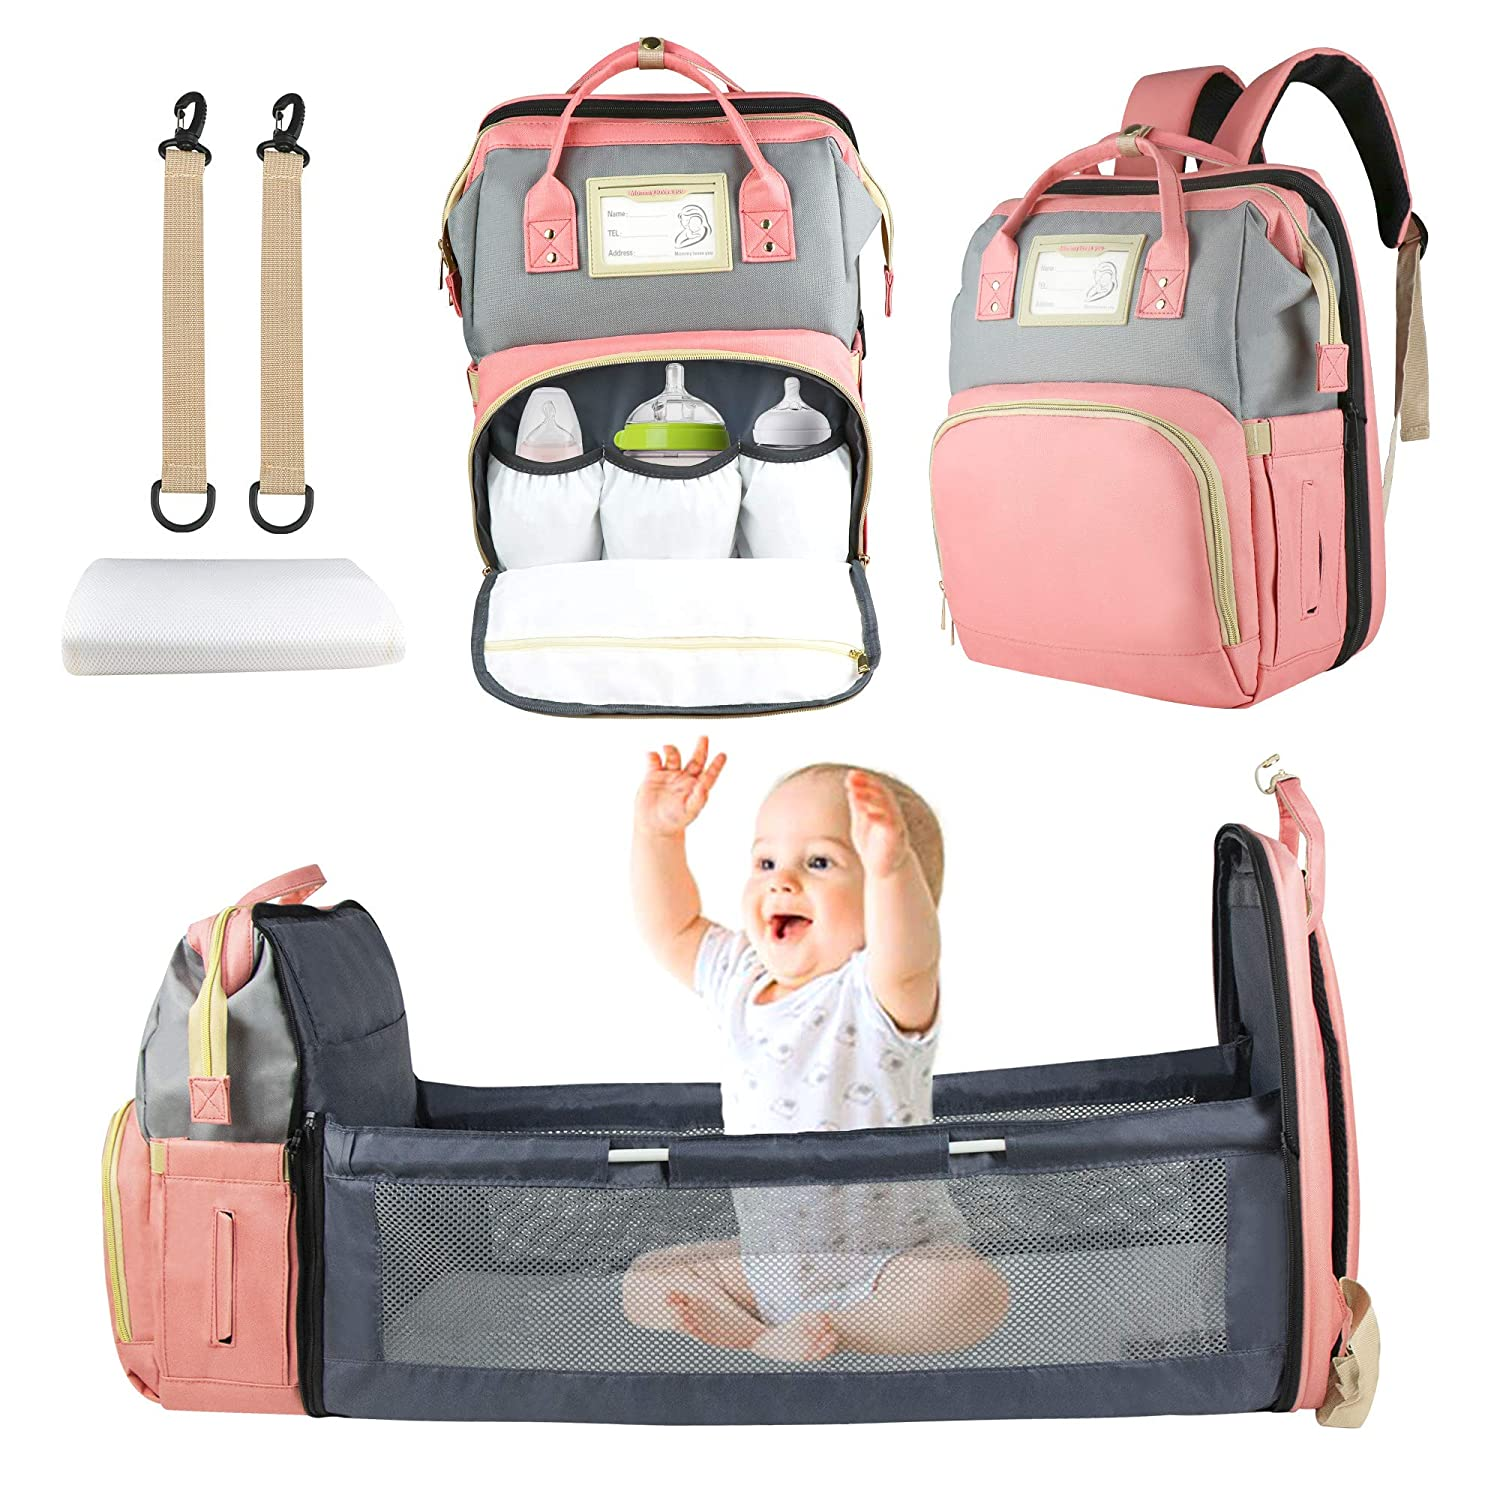 Diaper Bag Backpack, Nanssigy Travel Foldable Baby Bed with Bassinet, Waterproof Portable Nappy Bag for Baby Girl with Changing Station and USB Port, Multi-Function Mommy Bag Organizer w/Crib (Pink)